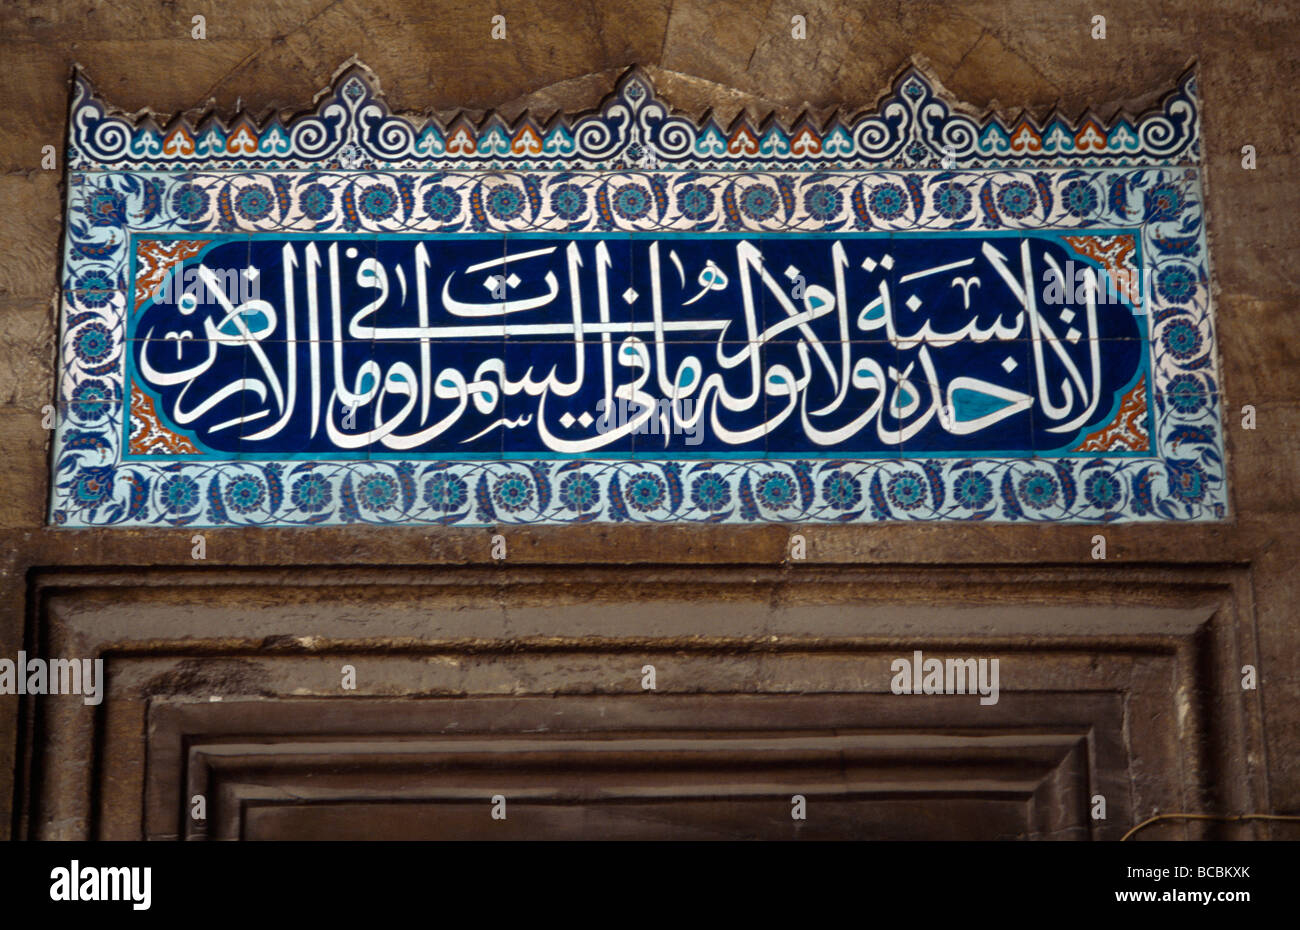 Surah Quran Stock Photos Images Alamy Stambul Qur An Mini 30 Juz Istanbul Turkey Suleymaniye Cami Islamic Calligraphy Part Of Ayat Al Kursi From The